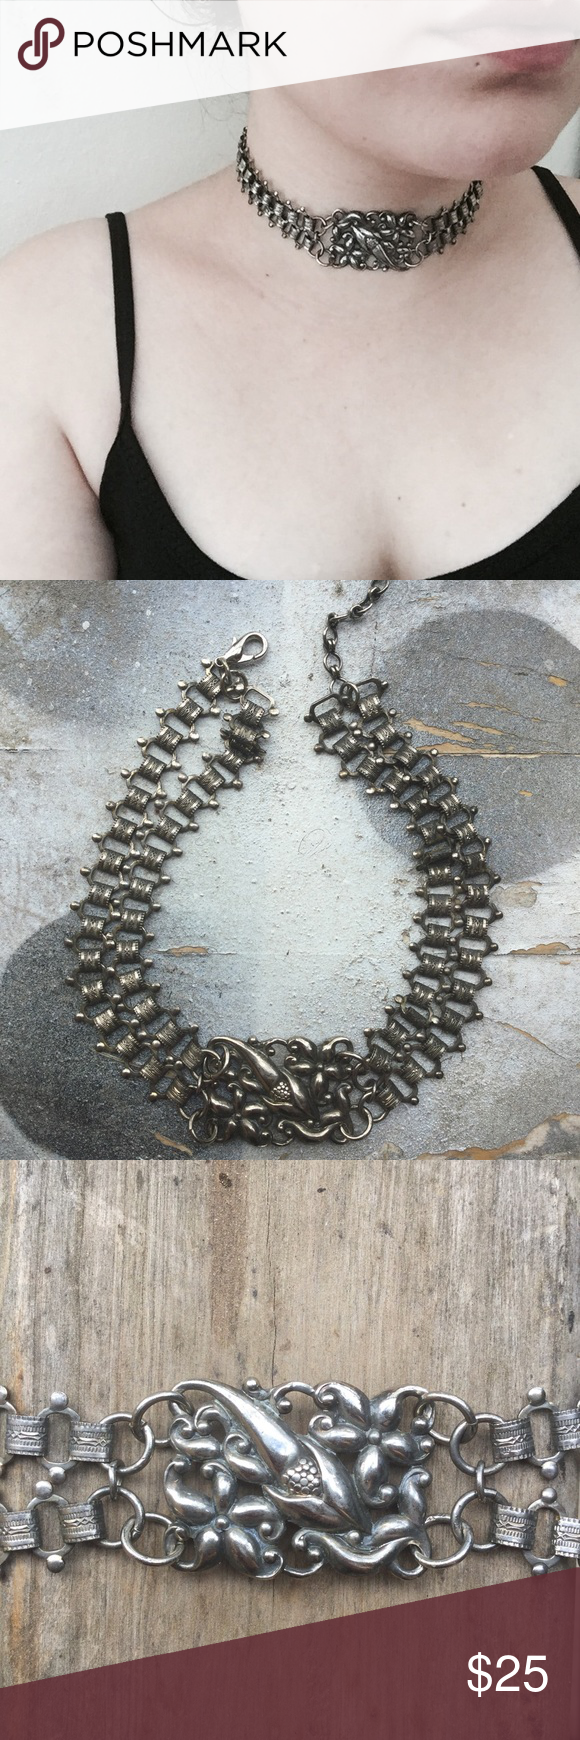 Spotted while shopping on Poshmark: Unique Choker Necklace ✨! #poshmark #fashion #shopping #style #Jewelry